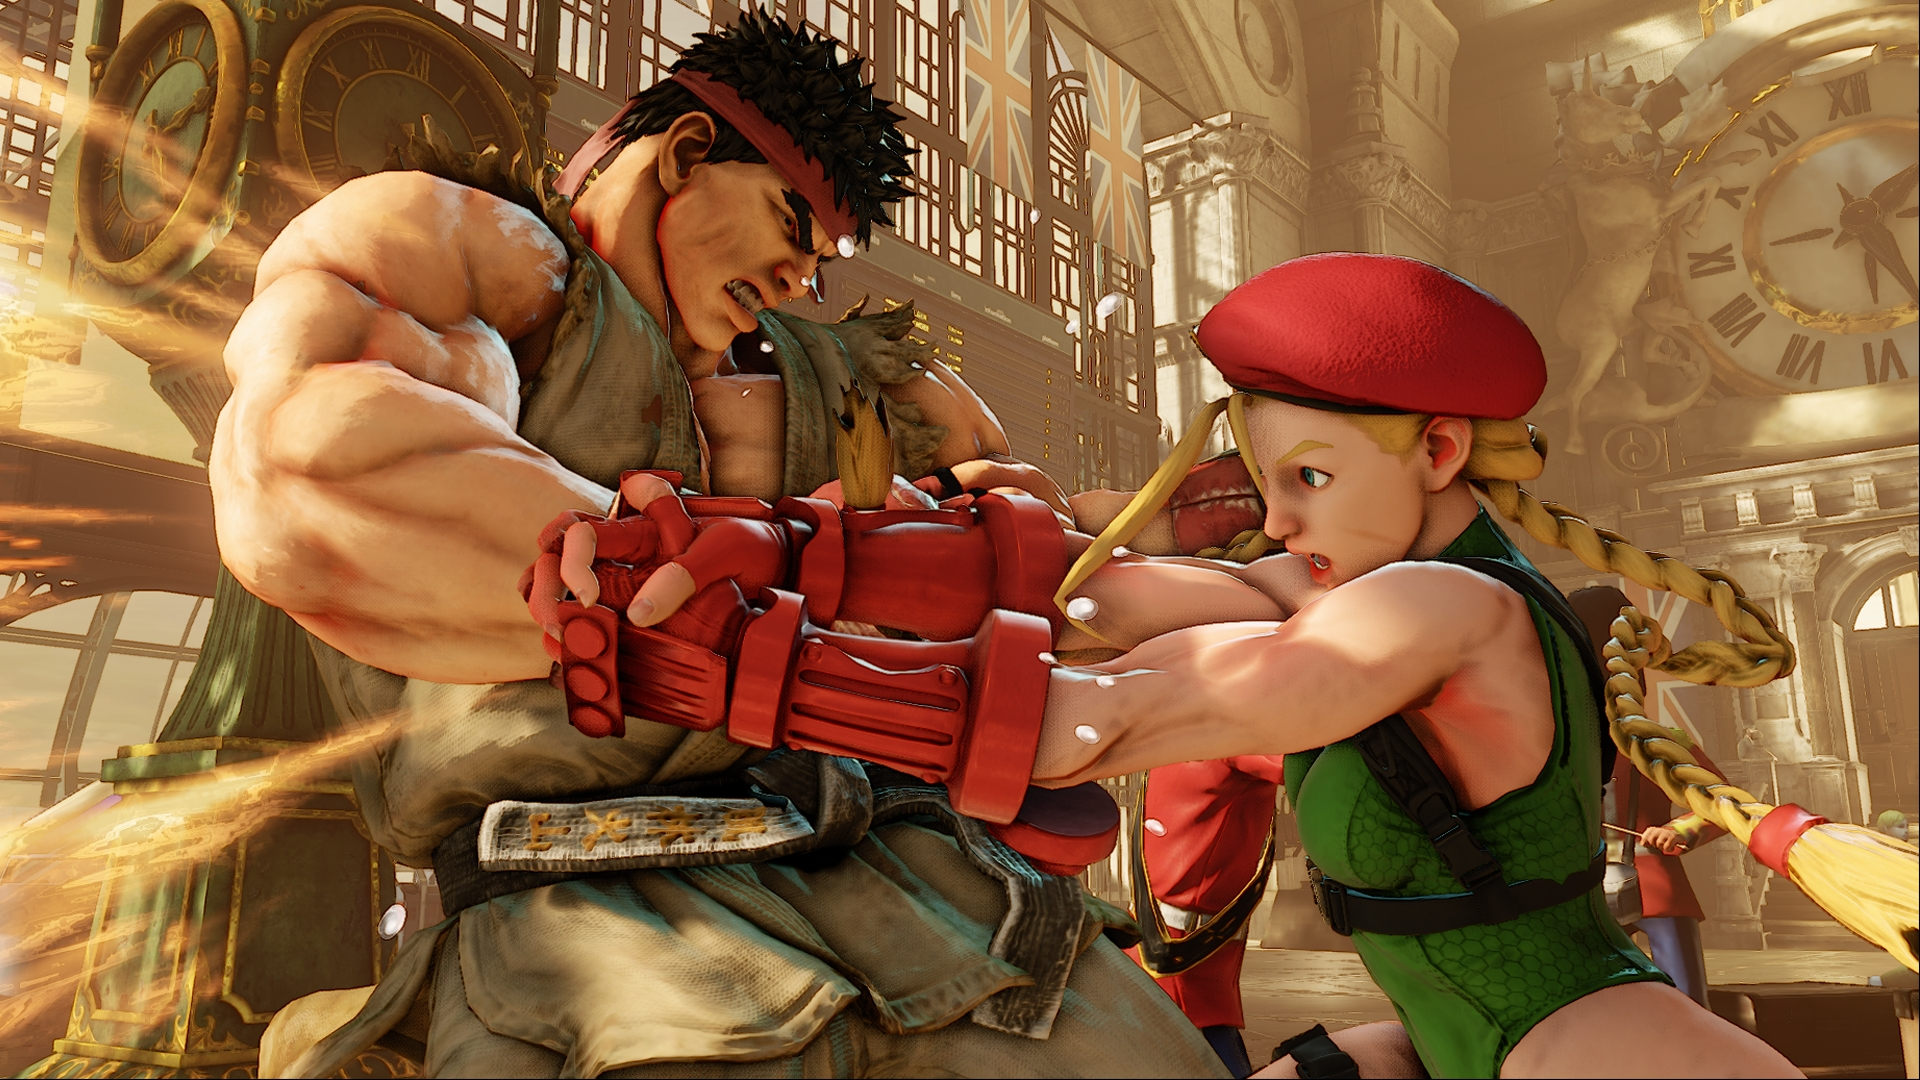 Street fighter porn picture erotic image